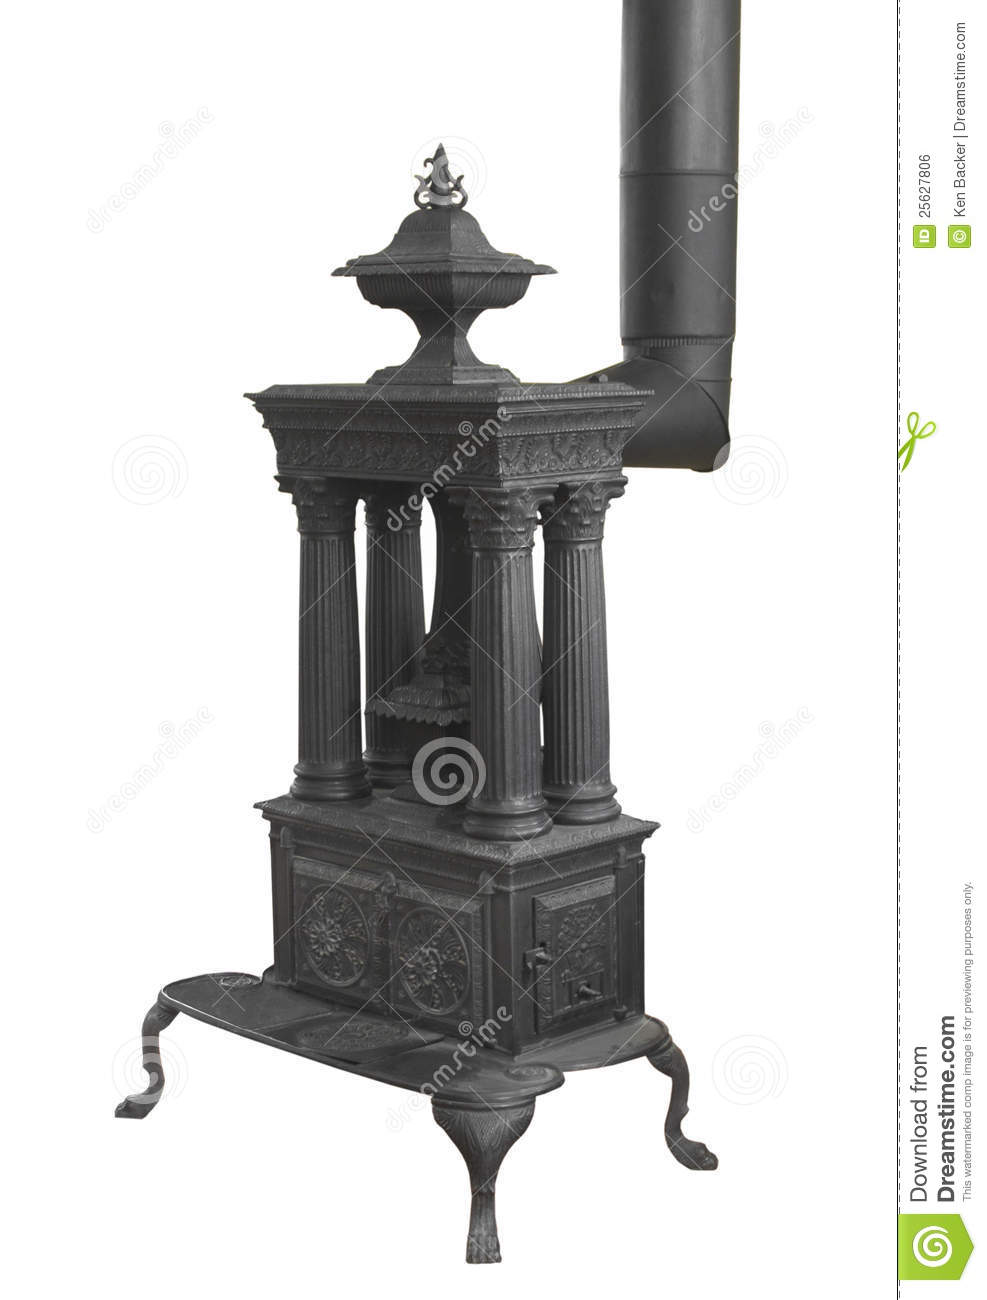 Old Wood Burning Heater Stove Isolated Stock Photo Image